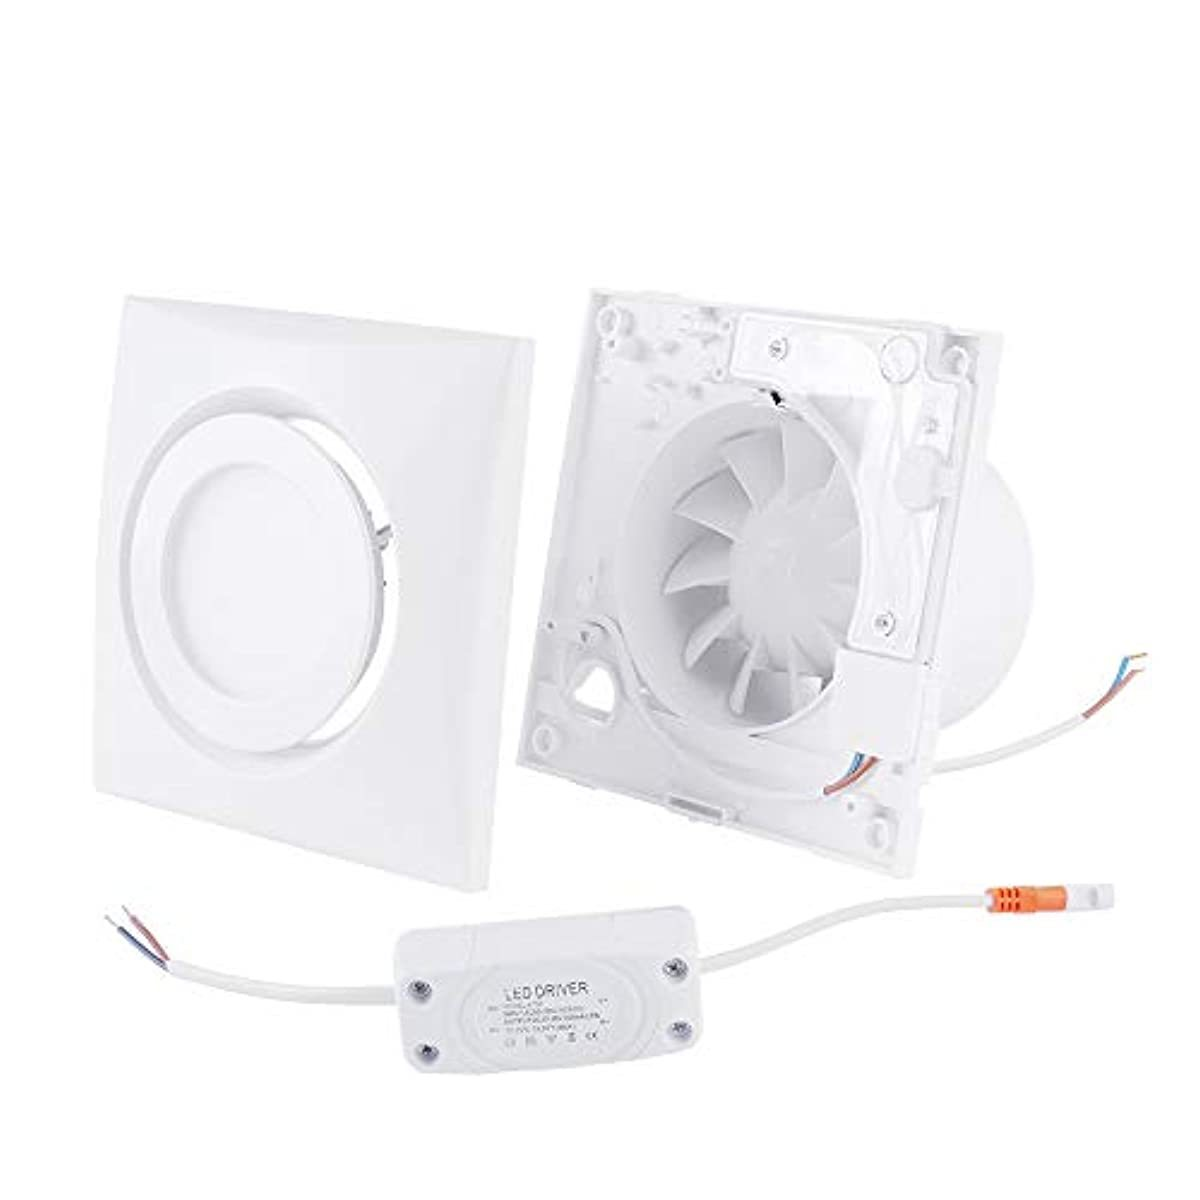 "Hon&Guan 4"" Home Ventilation Fan Garage Exhaust Fan Ceiling,Window and Wall Mount Fan with 4W LED Light for Kitchen Bathroom HVAC System"